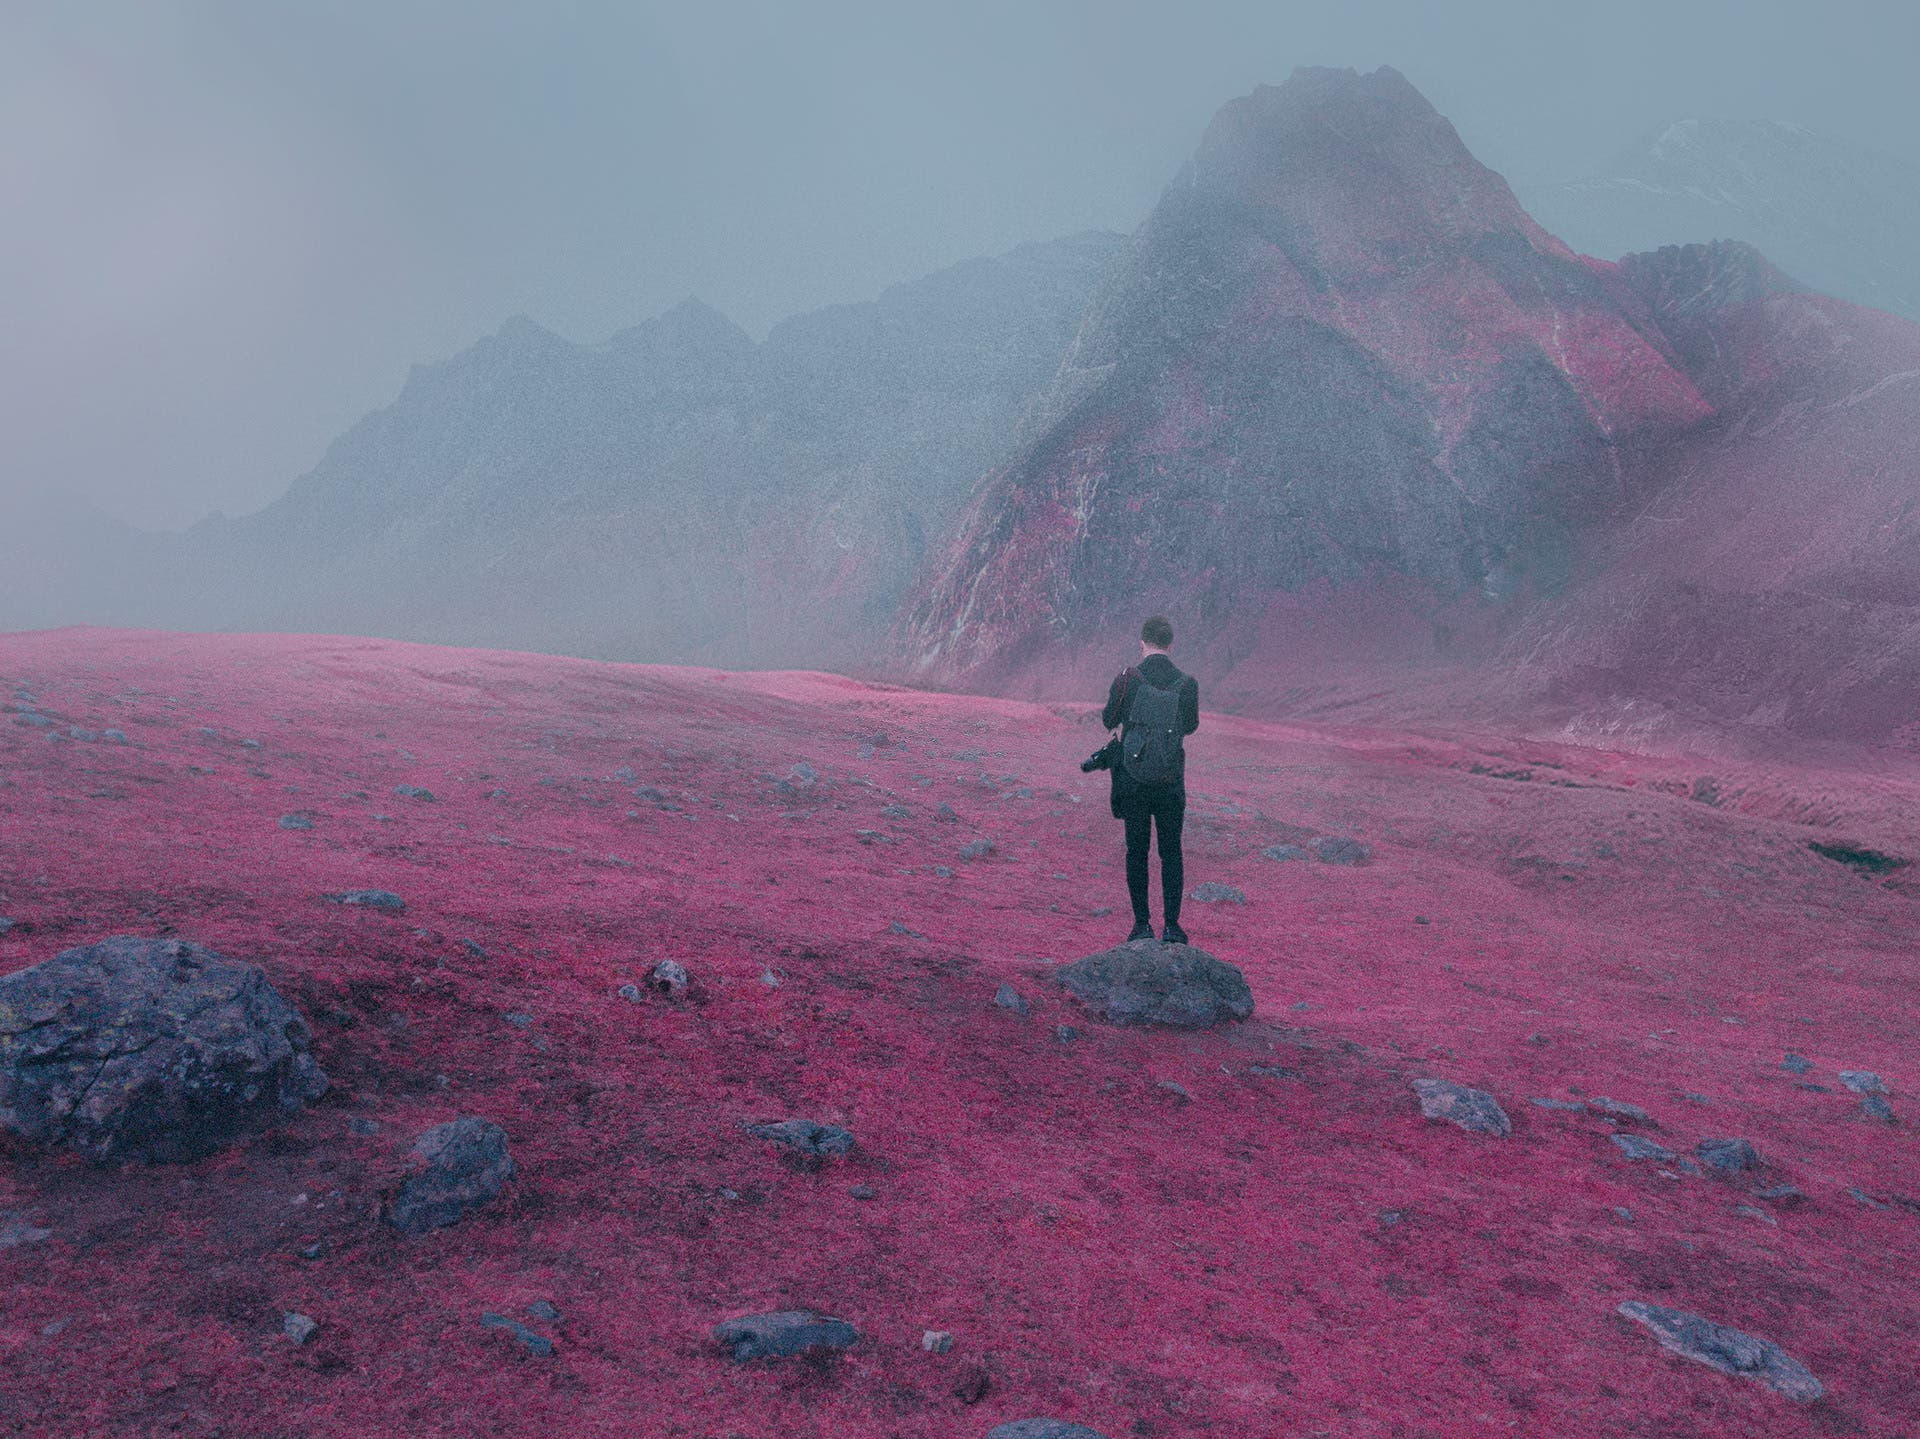 Jonas Daley Reimagines Chinese Landscapes as Surreal Scenery